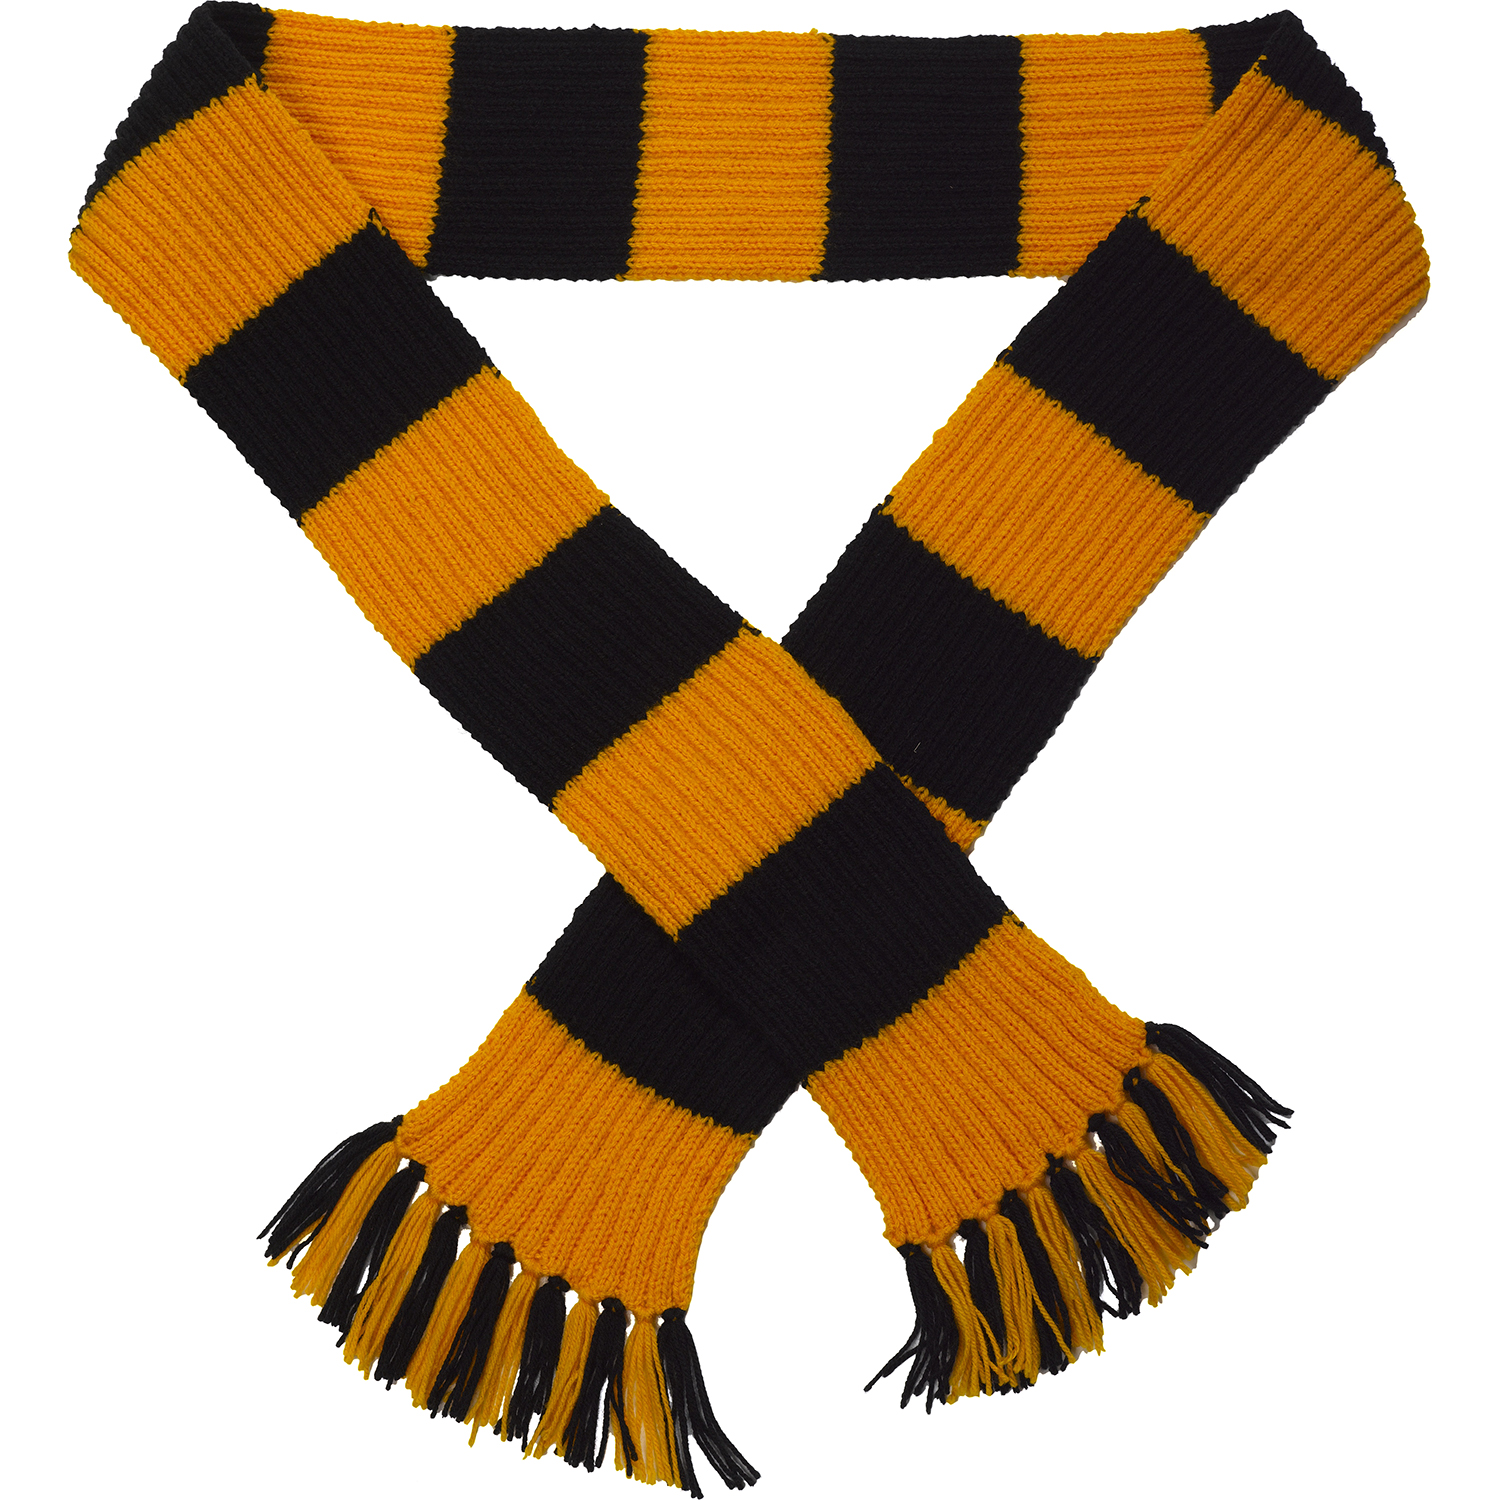 Knitting Pattern For Football Scarf : Premier League Team Striped Football Scarf Knitting ...